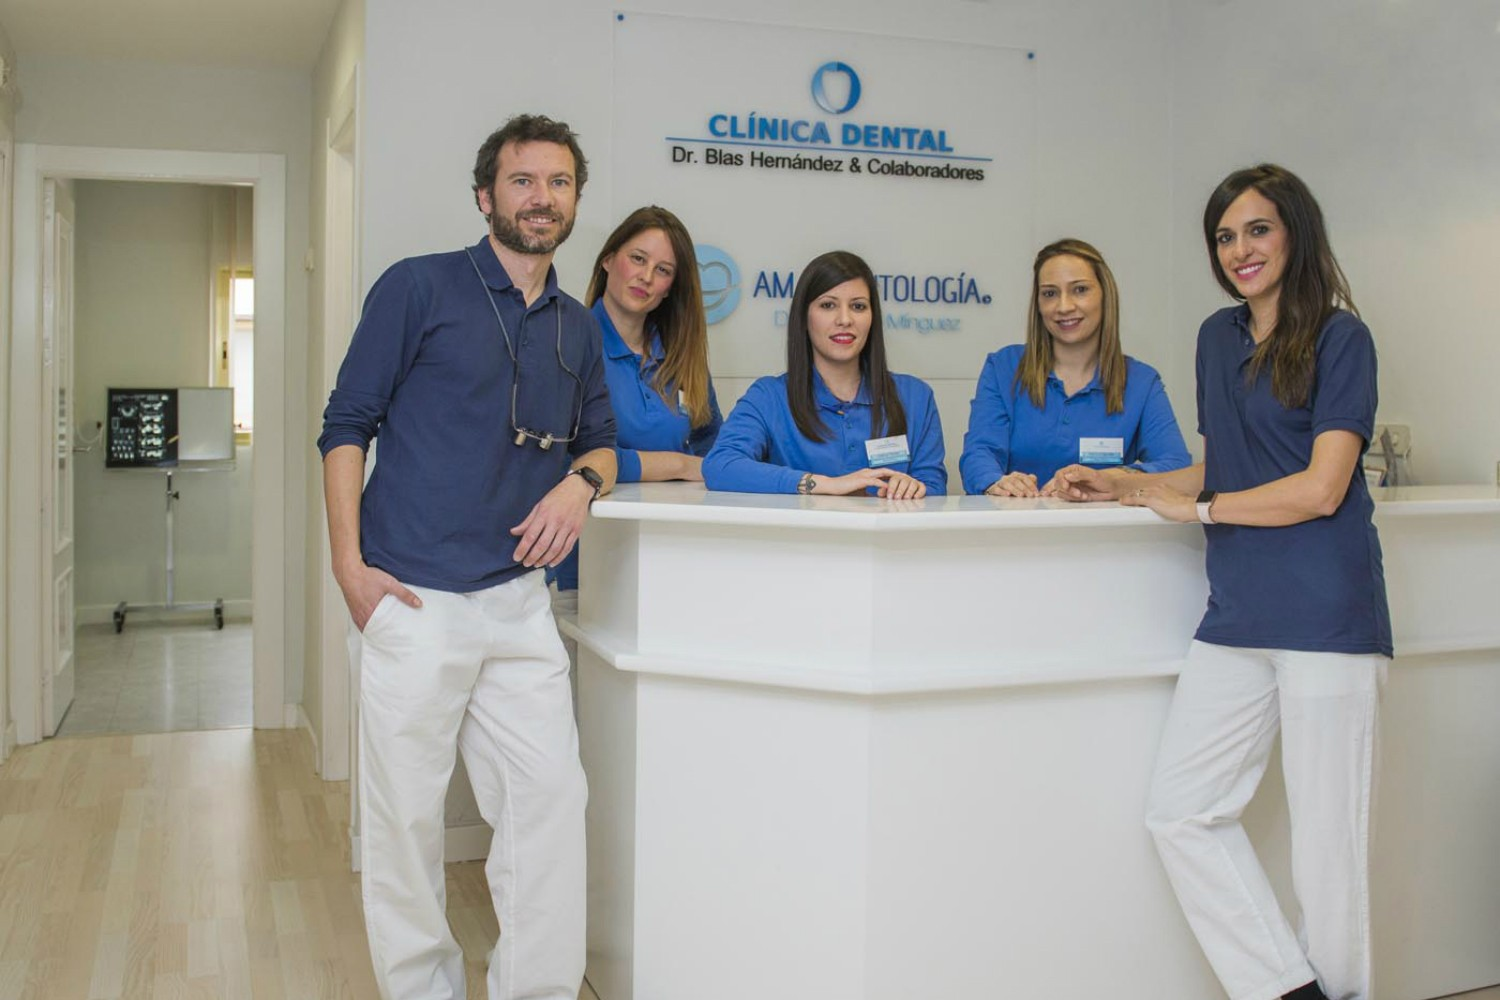 clinica dental toledo equipo